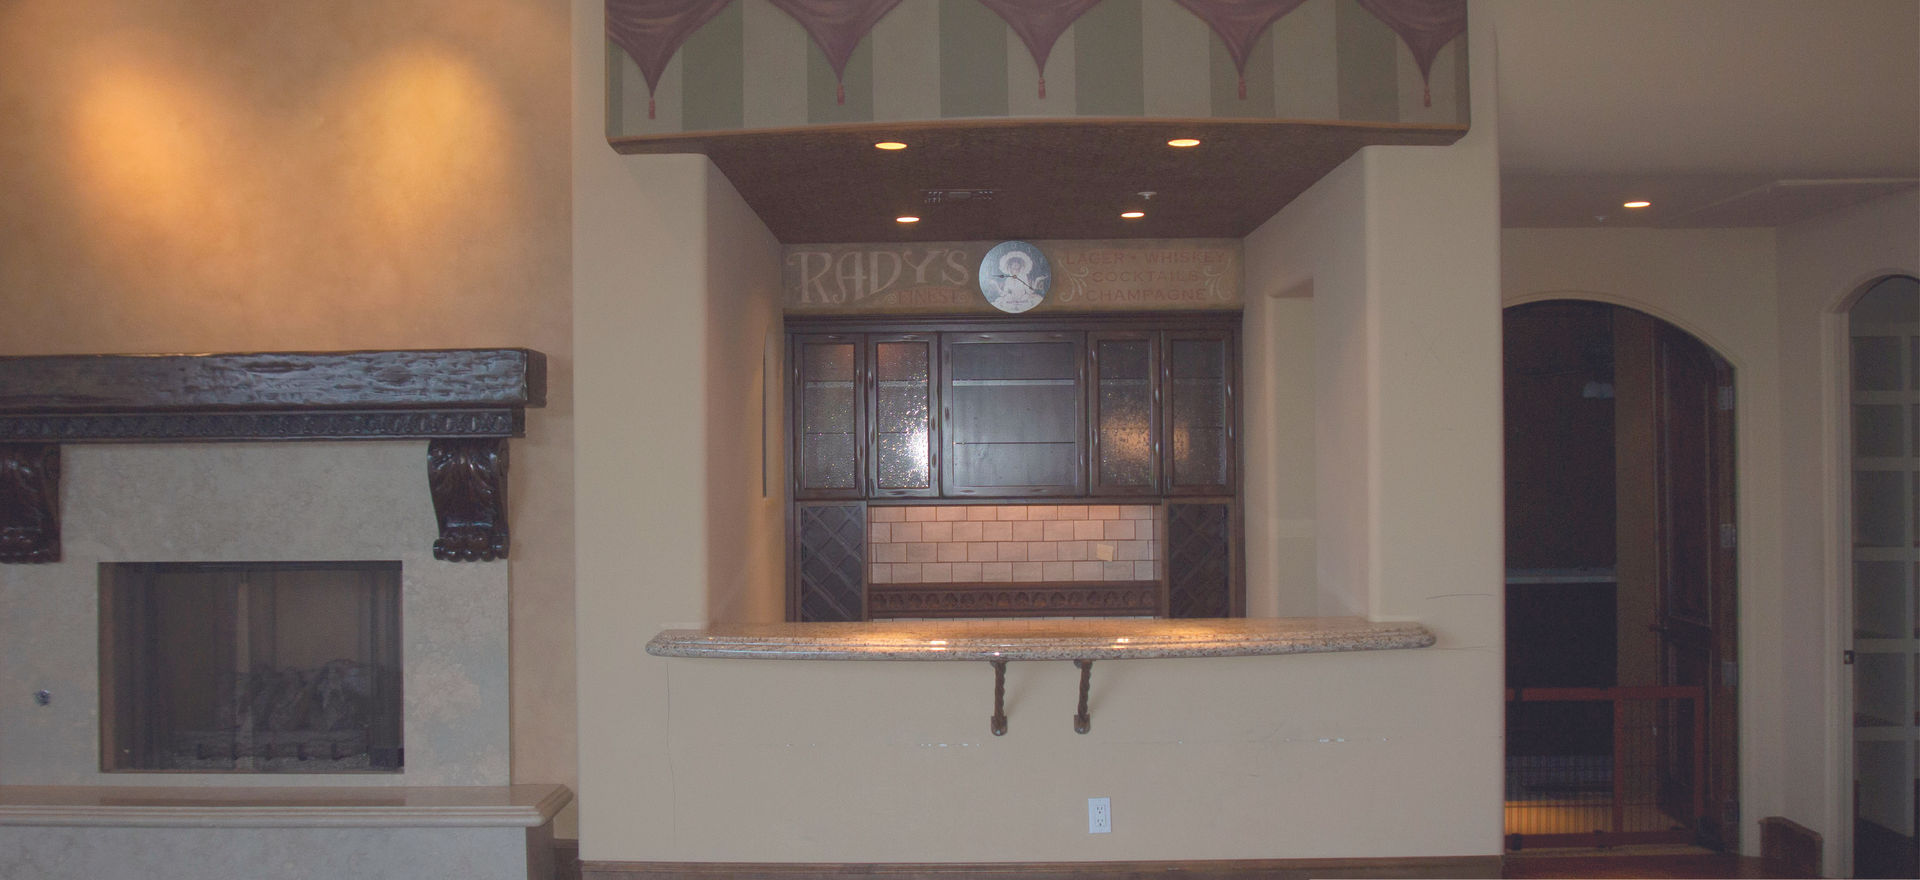 Removing the rounded header was an simple and easy way to bring the look more modern and timeless. New finishes and updated lighting were used to complete the new look.